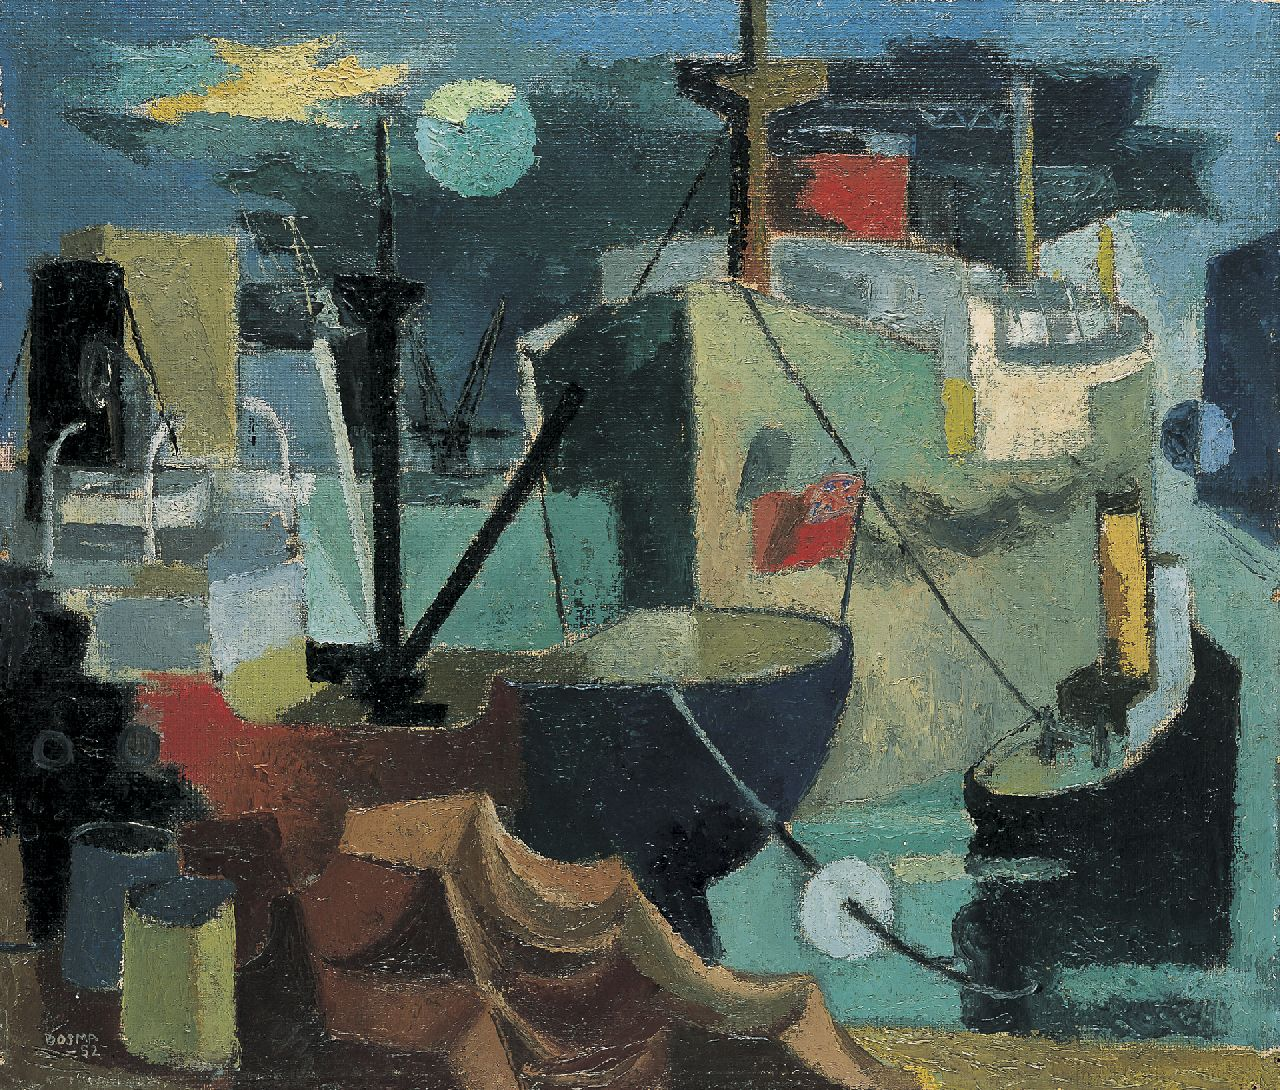 Bosma W.  | Willem 'Wim' Bosma, 'Havenbeeld no.3', oil on canvas laid down on painter's board 55.3 x 64.8 cm, signed l.l. and dated '52